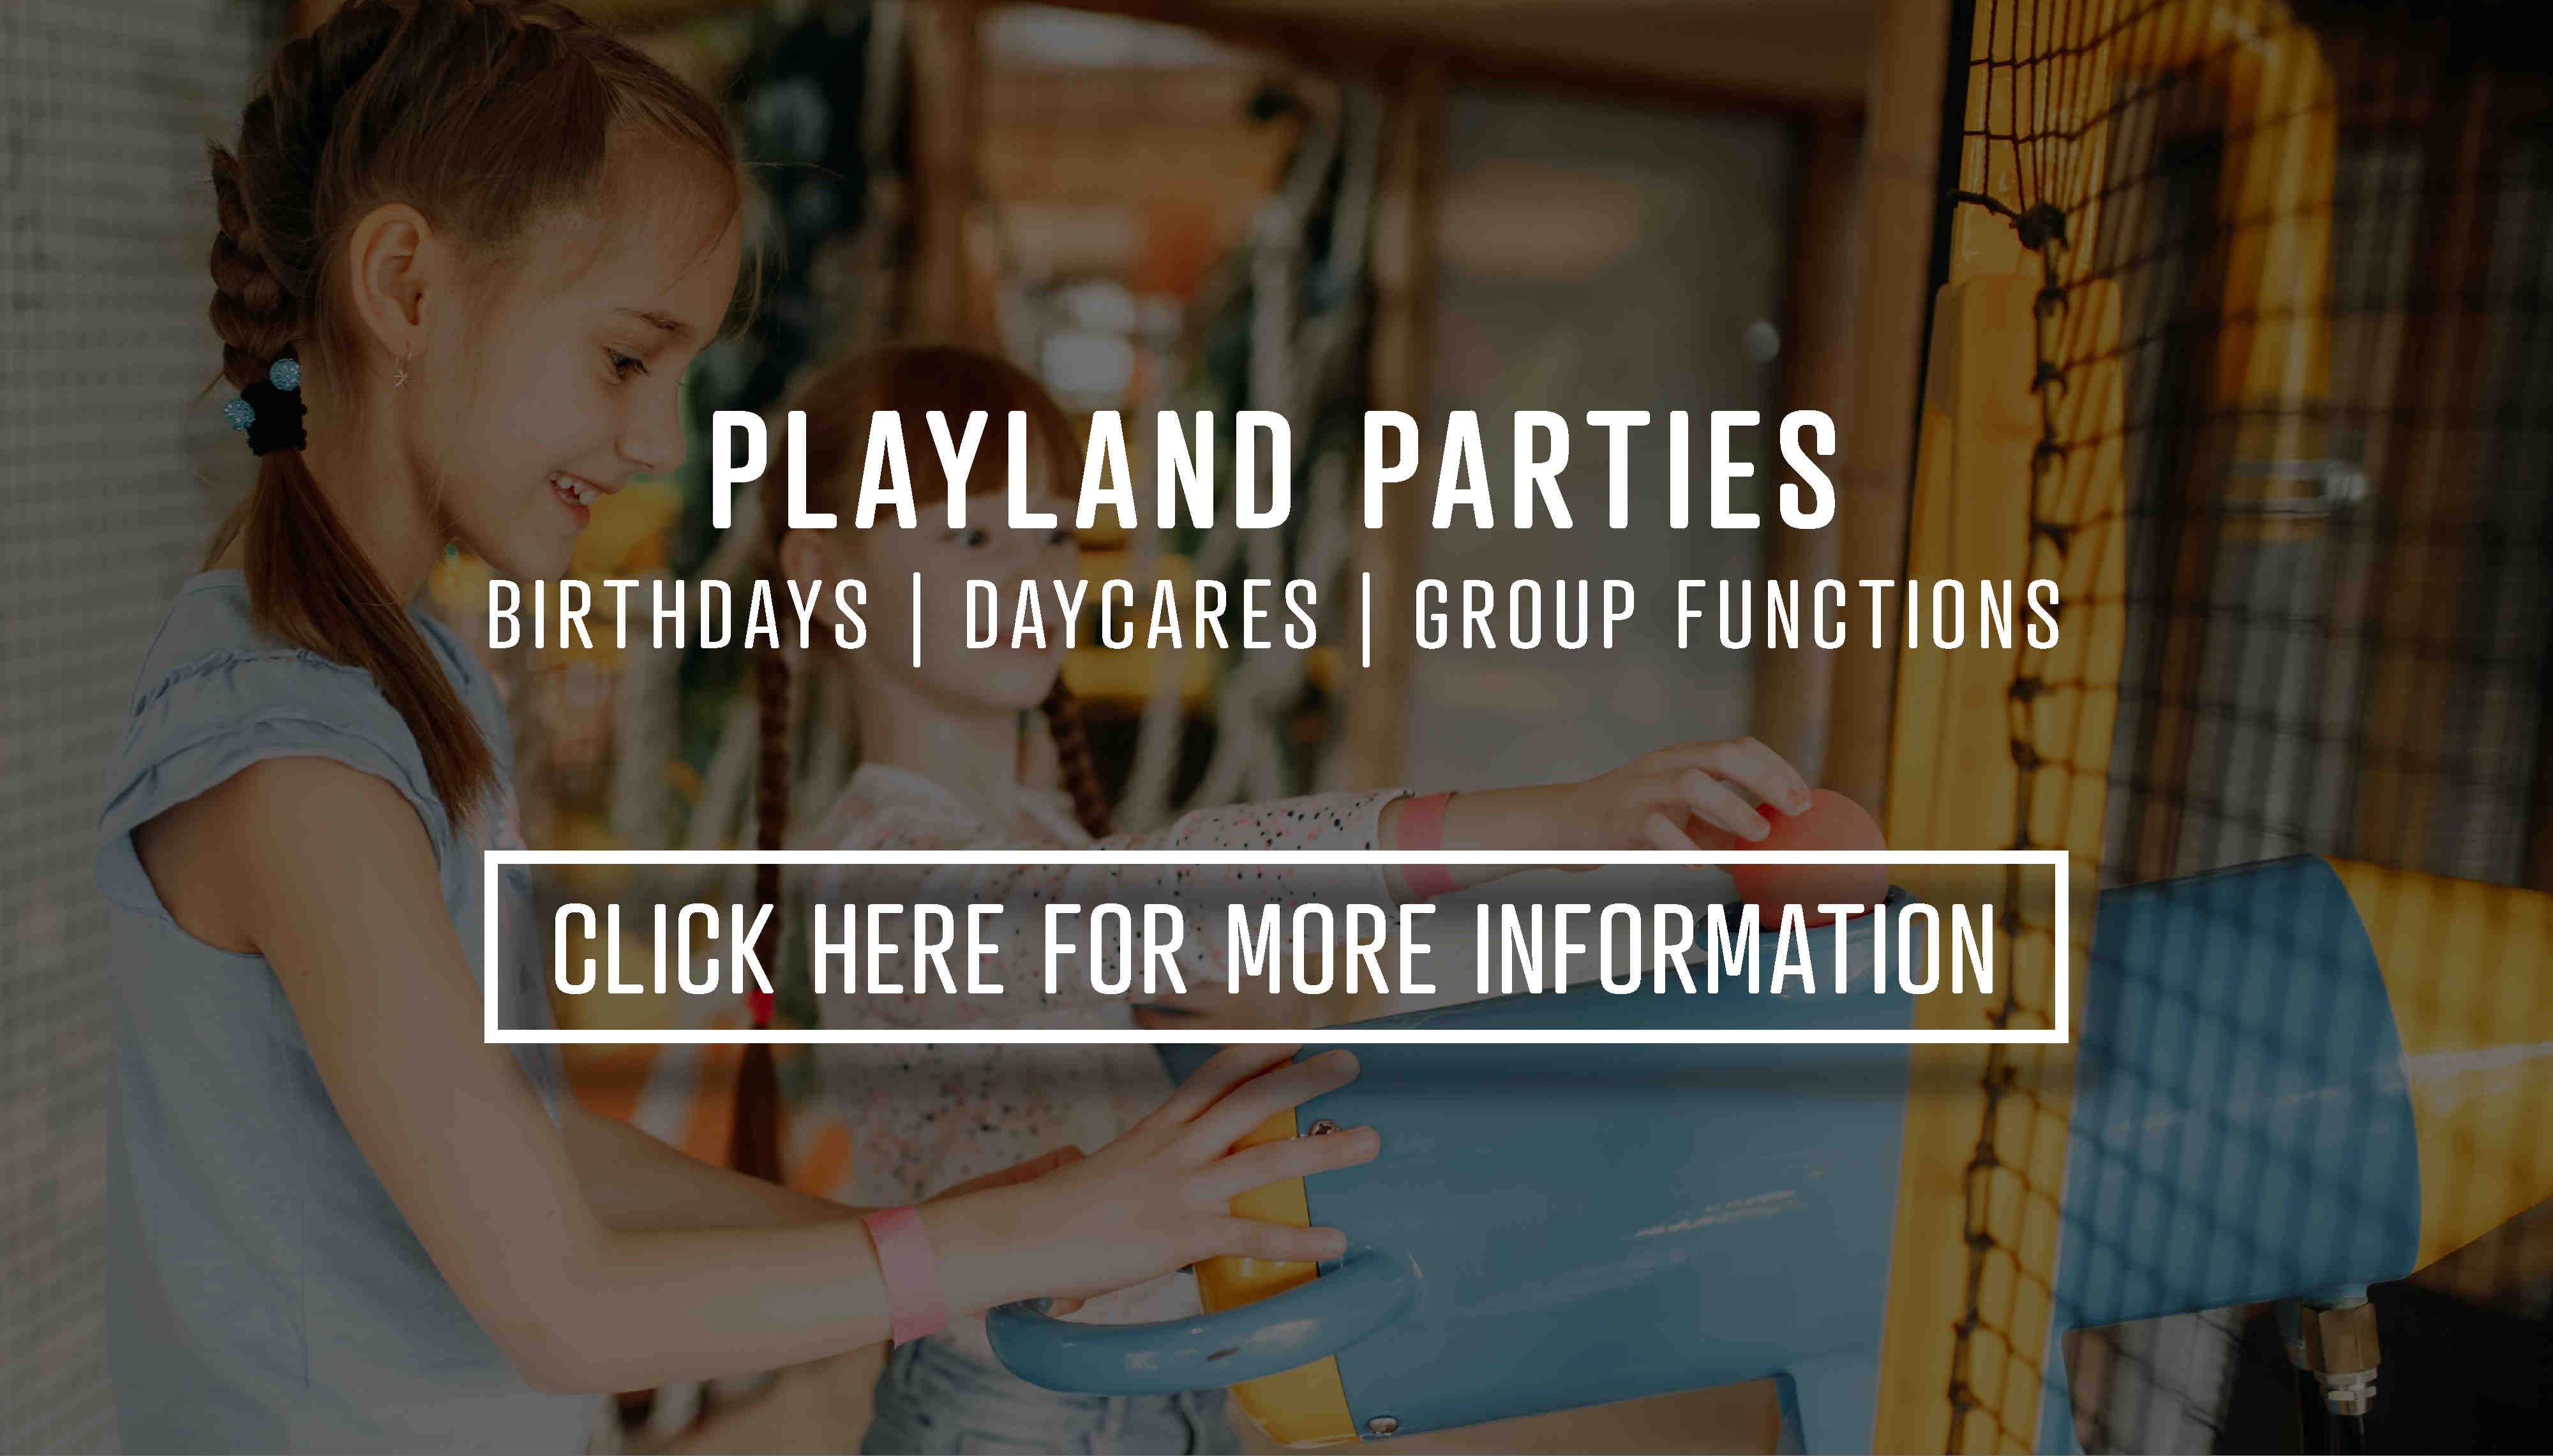 Playland parties - click here